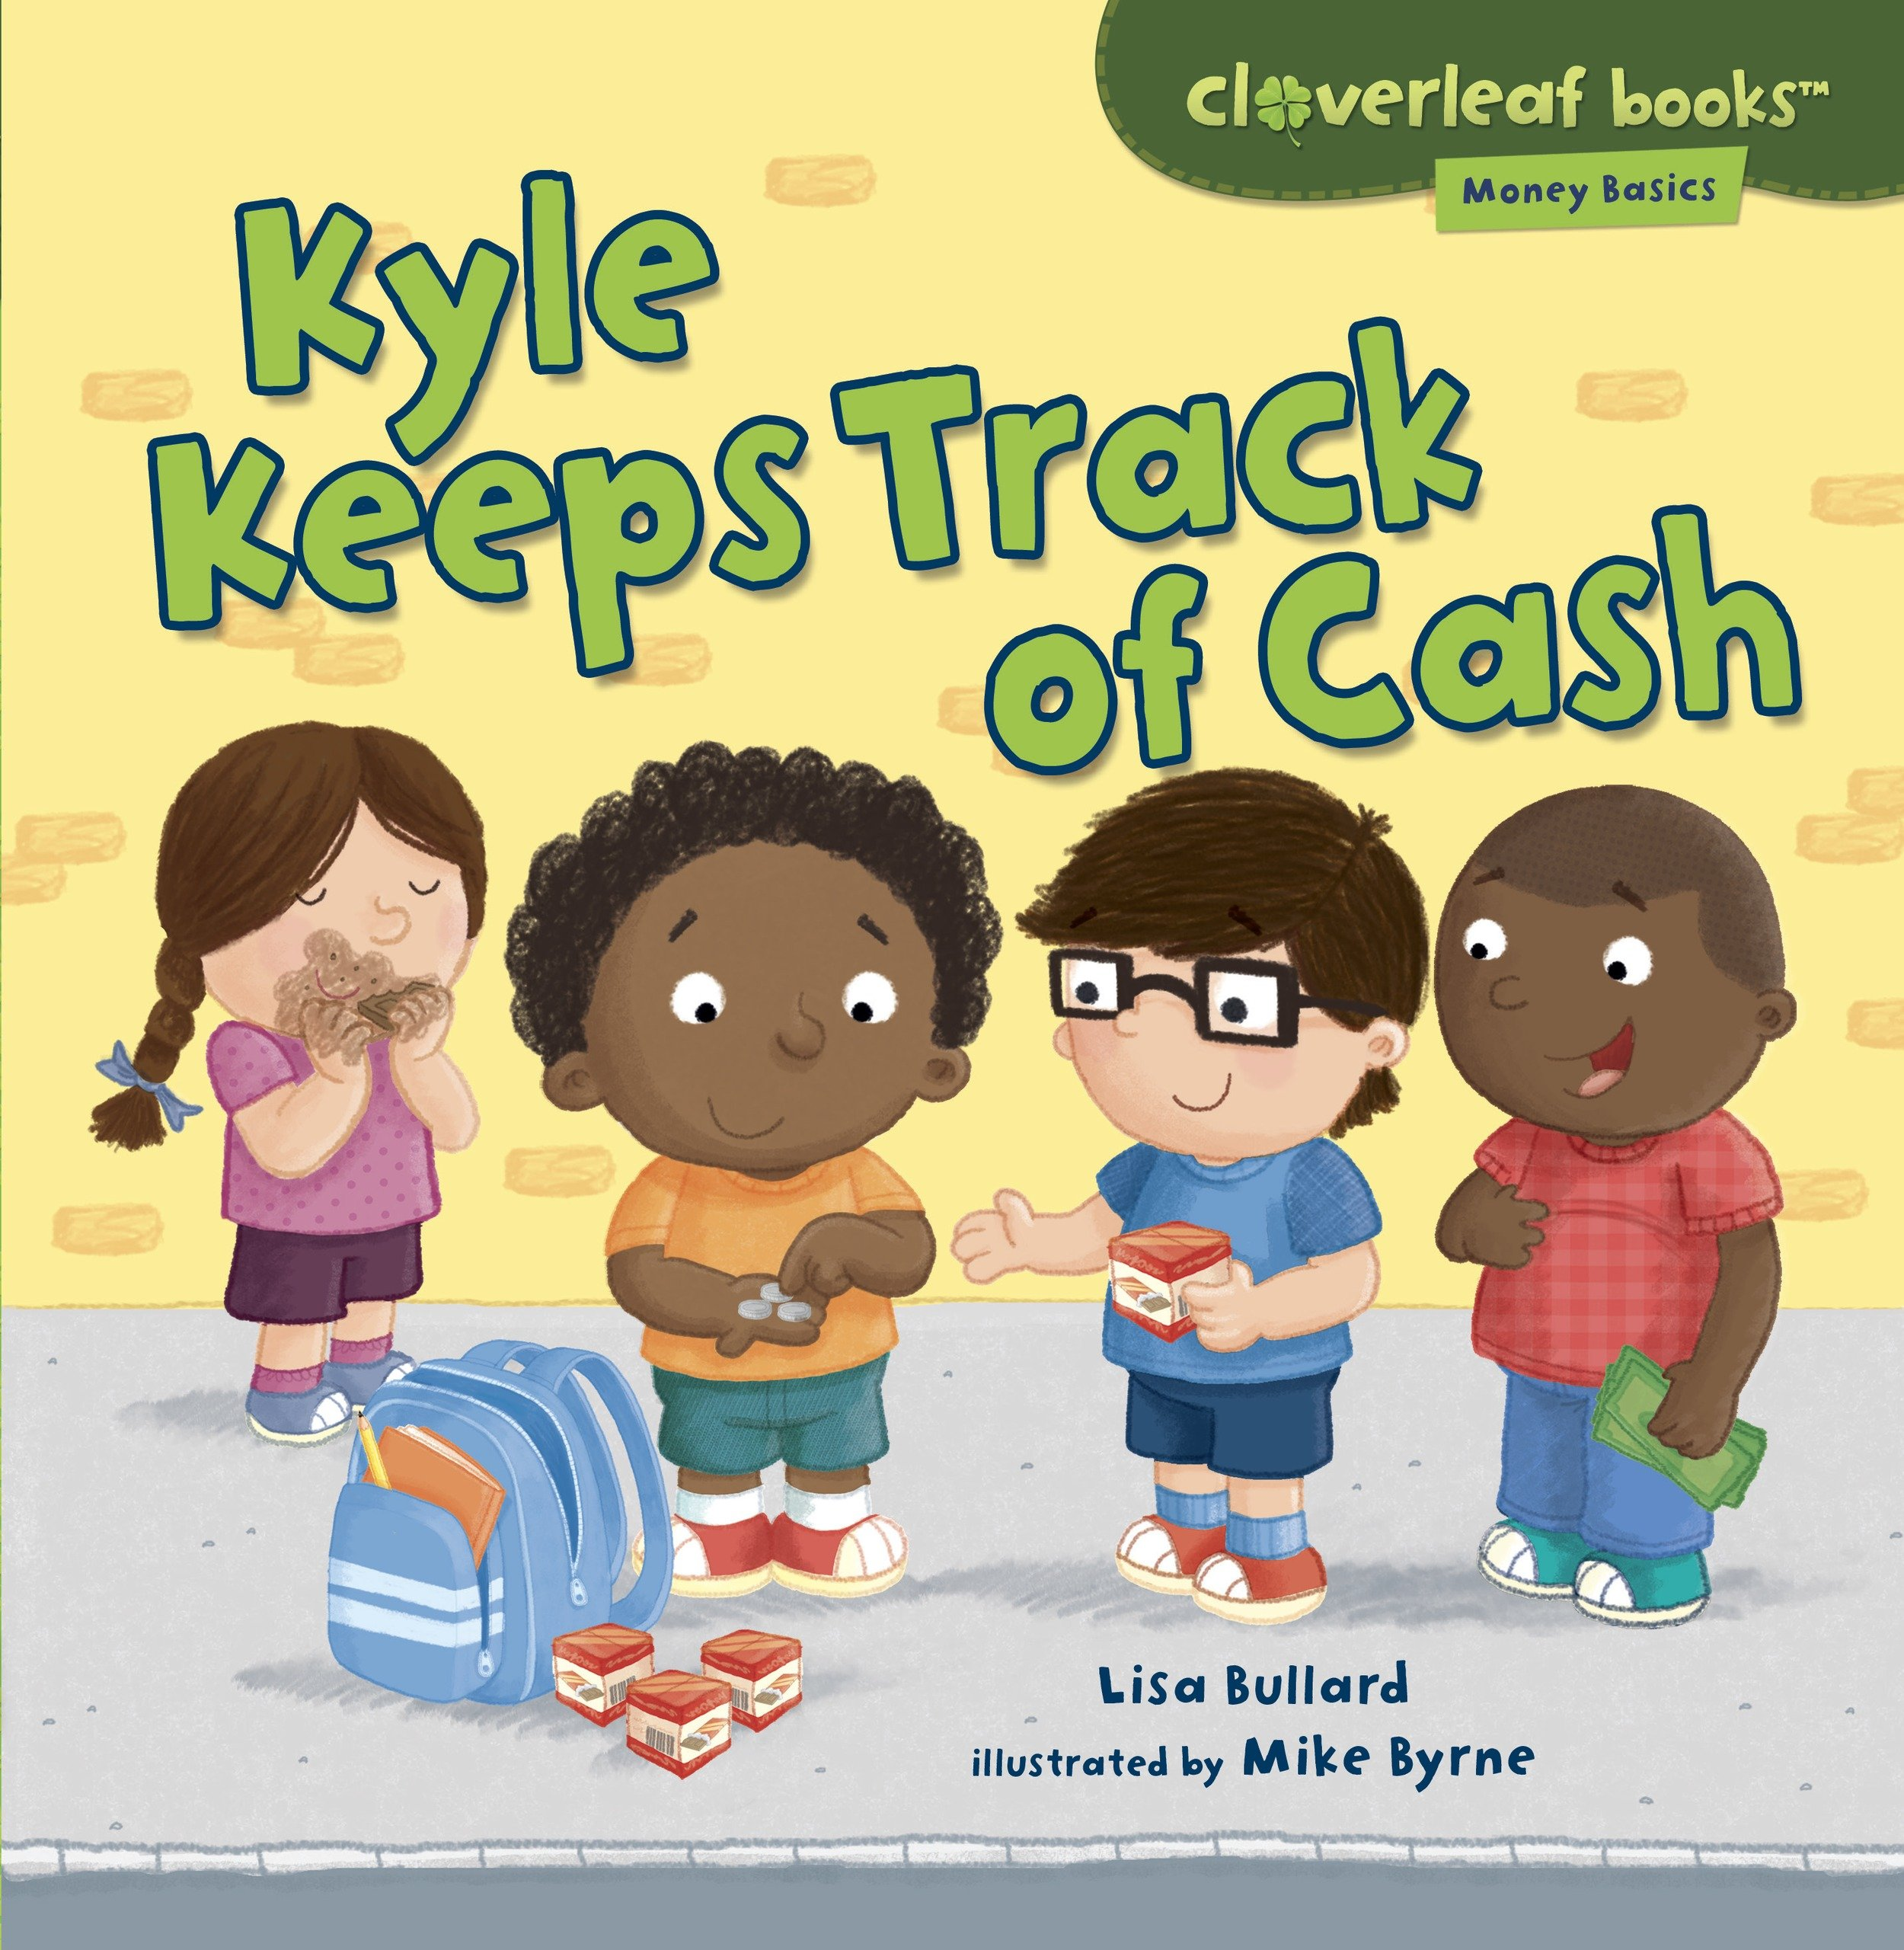 Image result for kyle keeps track of cash